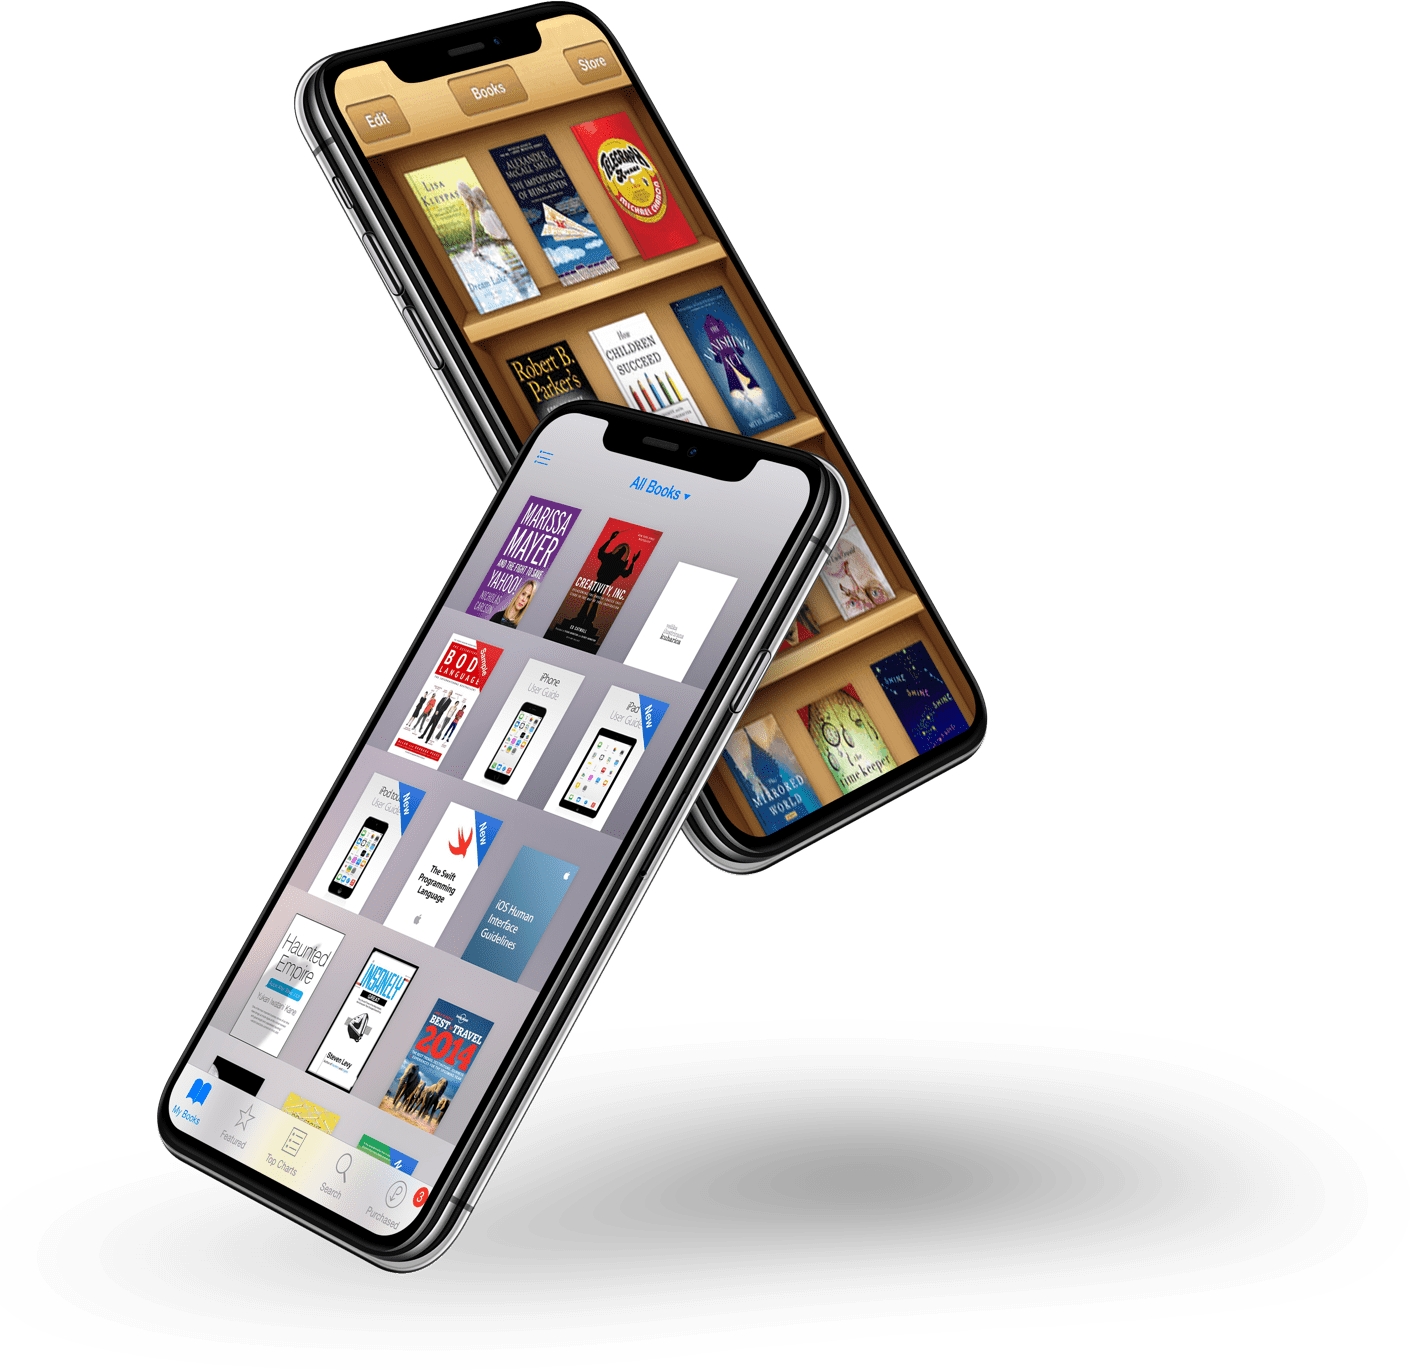 2 smartphones showcasing library apps